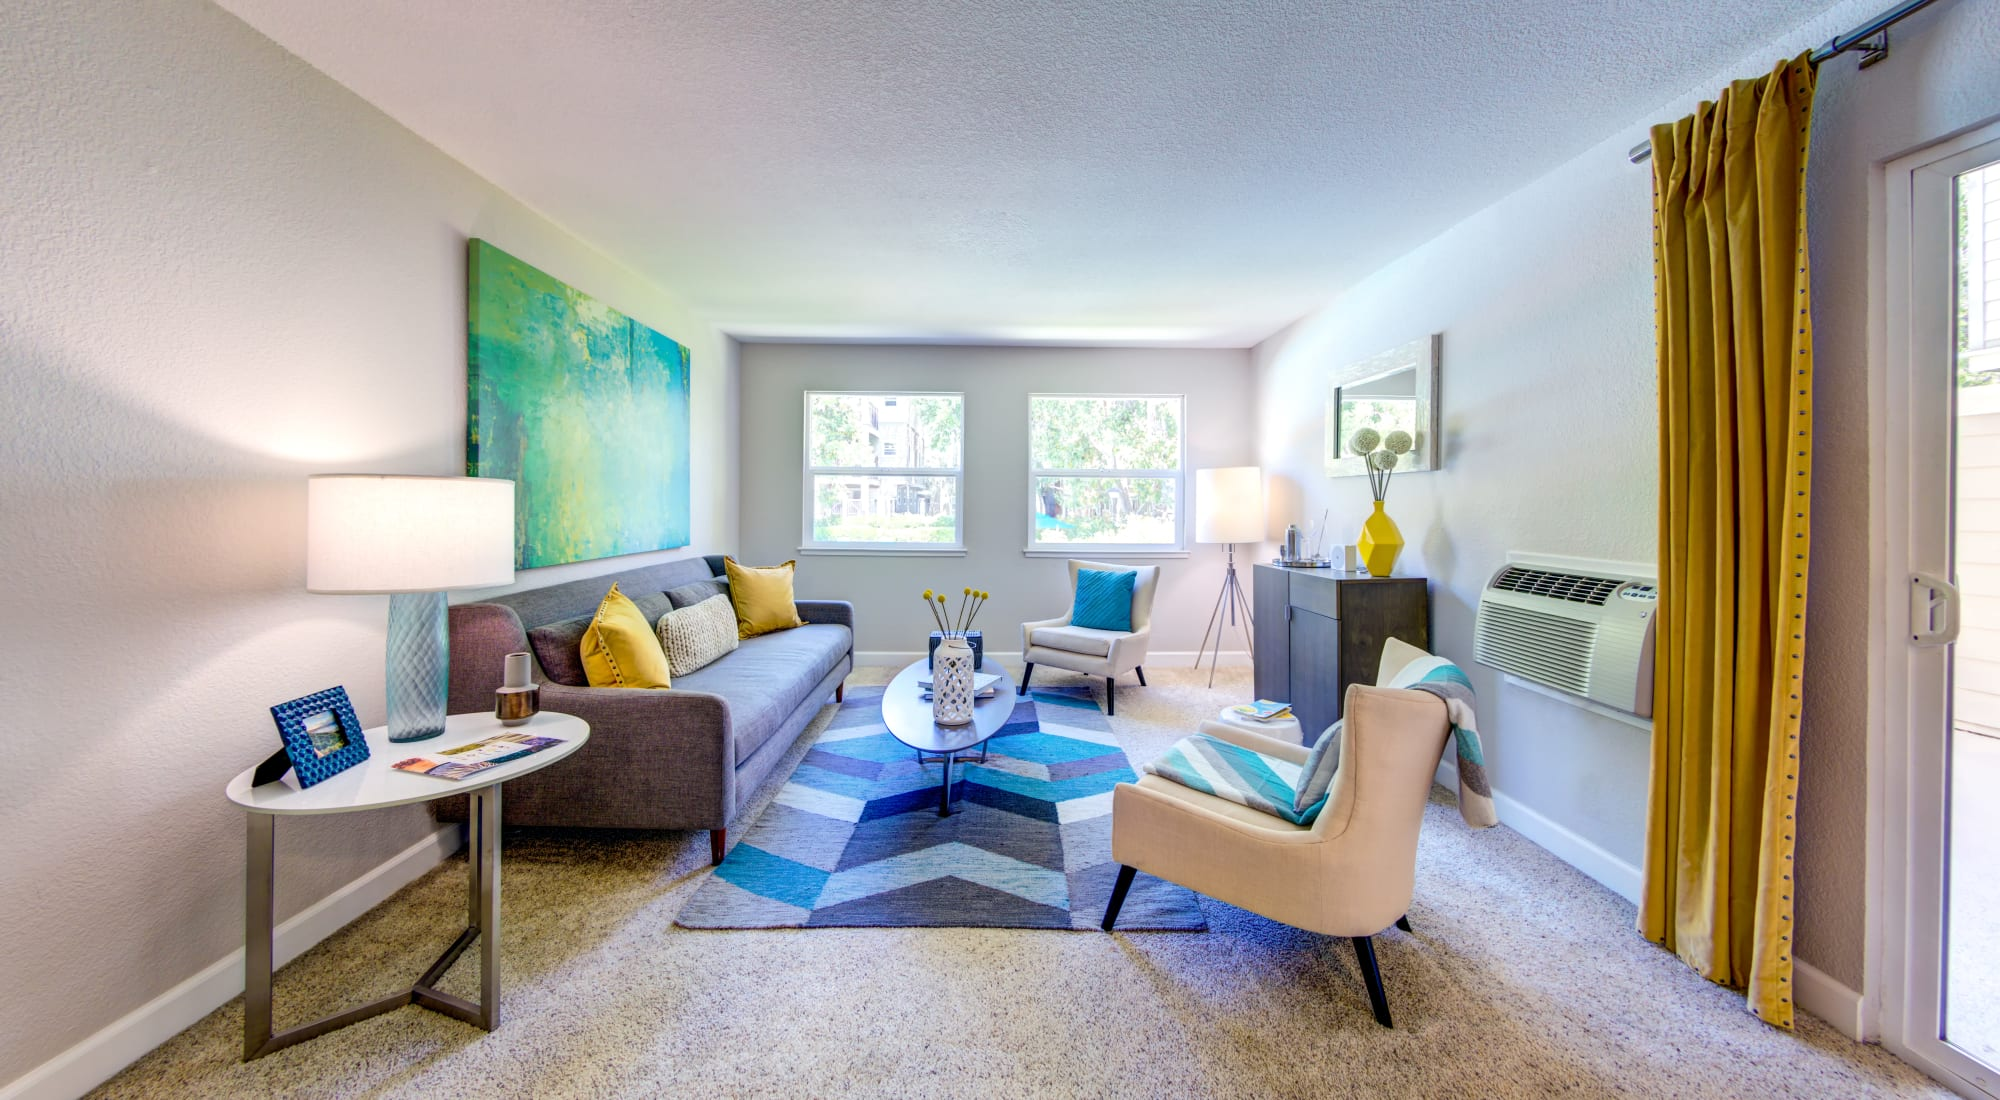 Apply to live at Sofi Sunnyvale in Sunnyvale, California